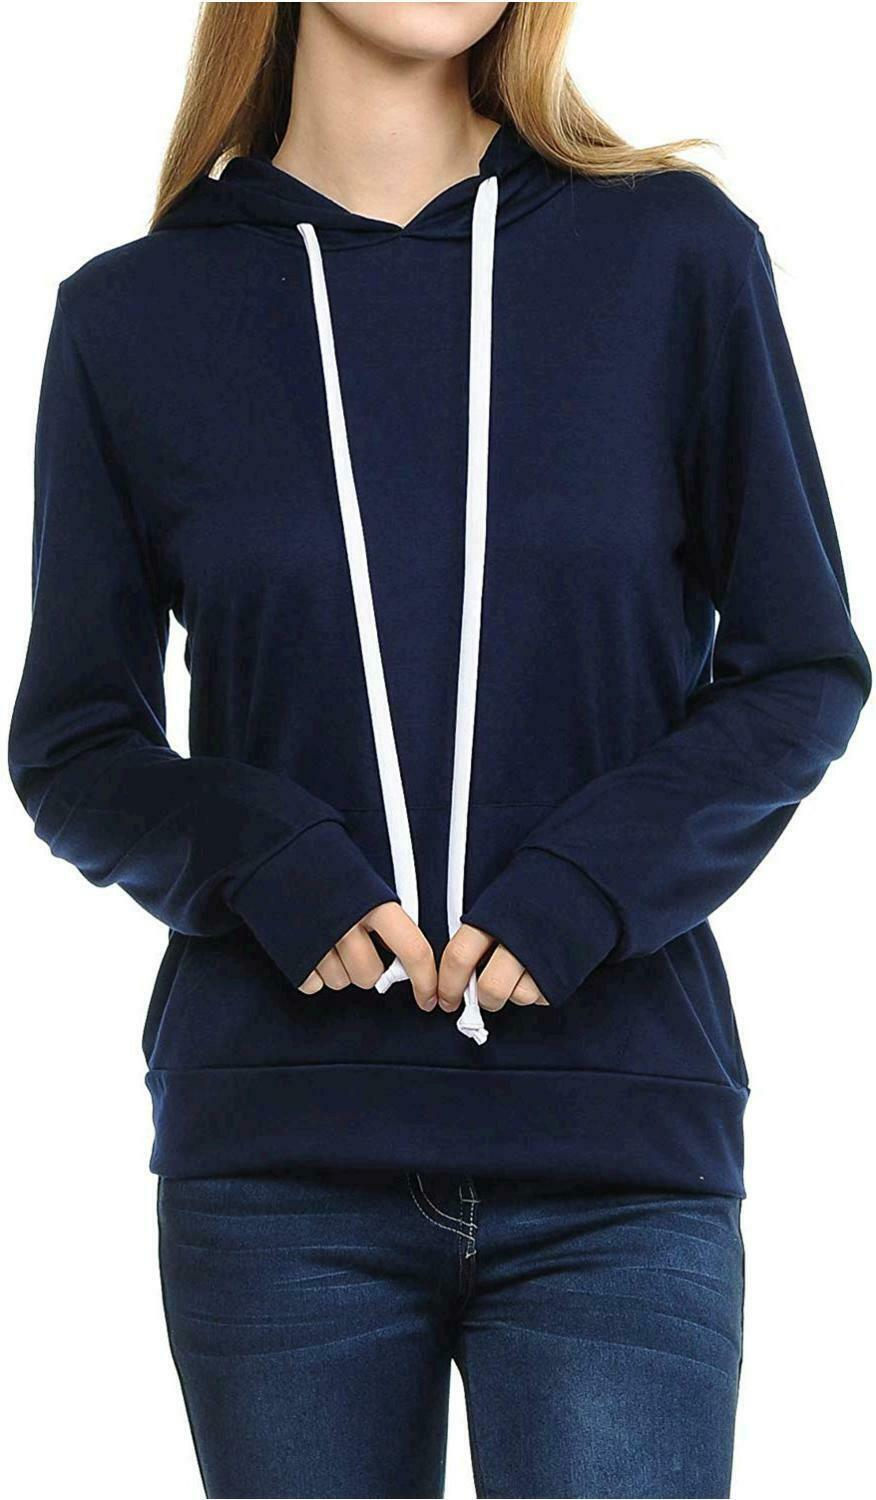 SSOULM Women's Casual Long Sleeve Pullover Hoodie with, No Color, Size No Size